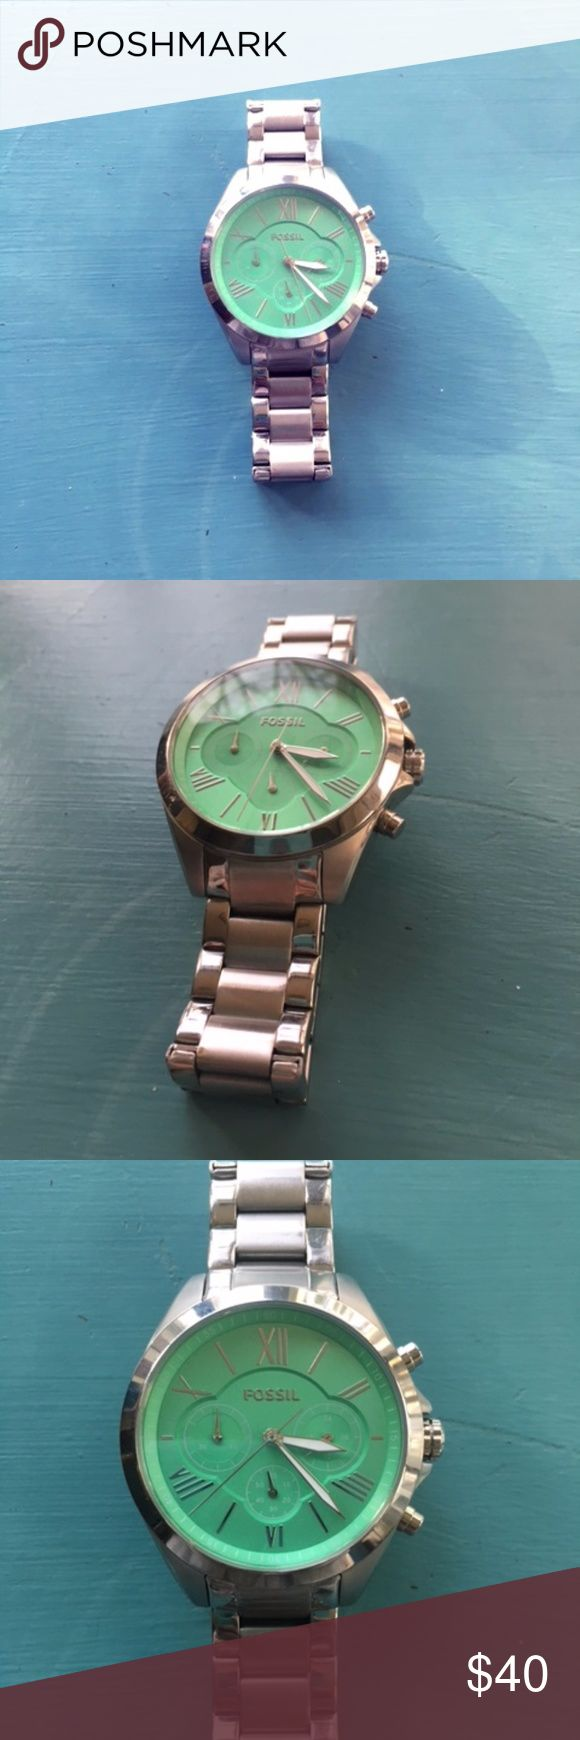 Silver Fossil Watch with Teal Face Used silver Fossil oversized watch with teal face. Numbers are marked in Roman numerals. Gently used, some scuffing on back of band. Feel free to message for more pics or if you have questions. Fossil Accessories Watches